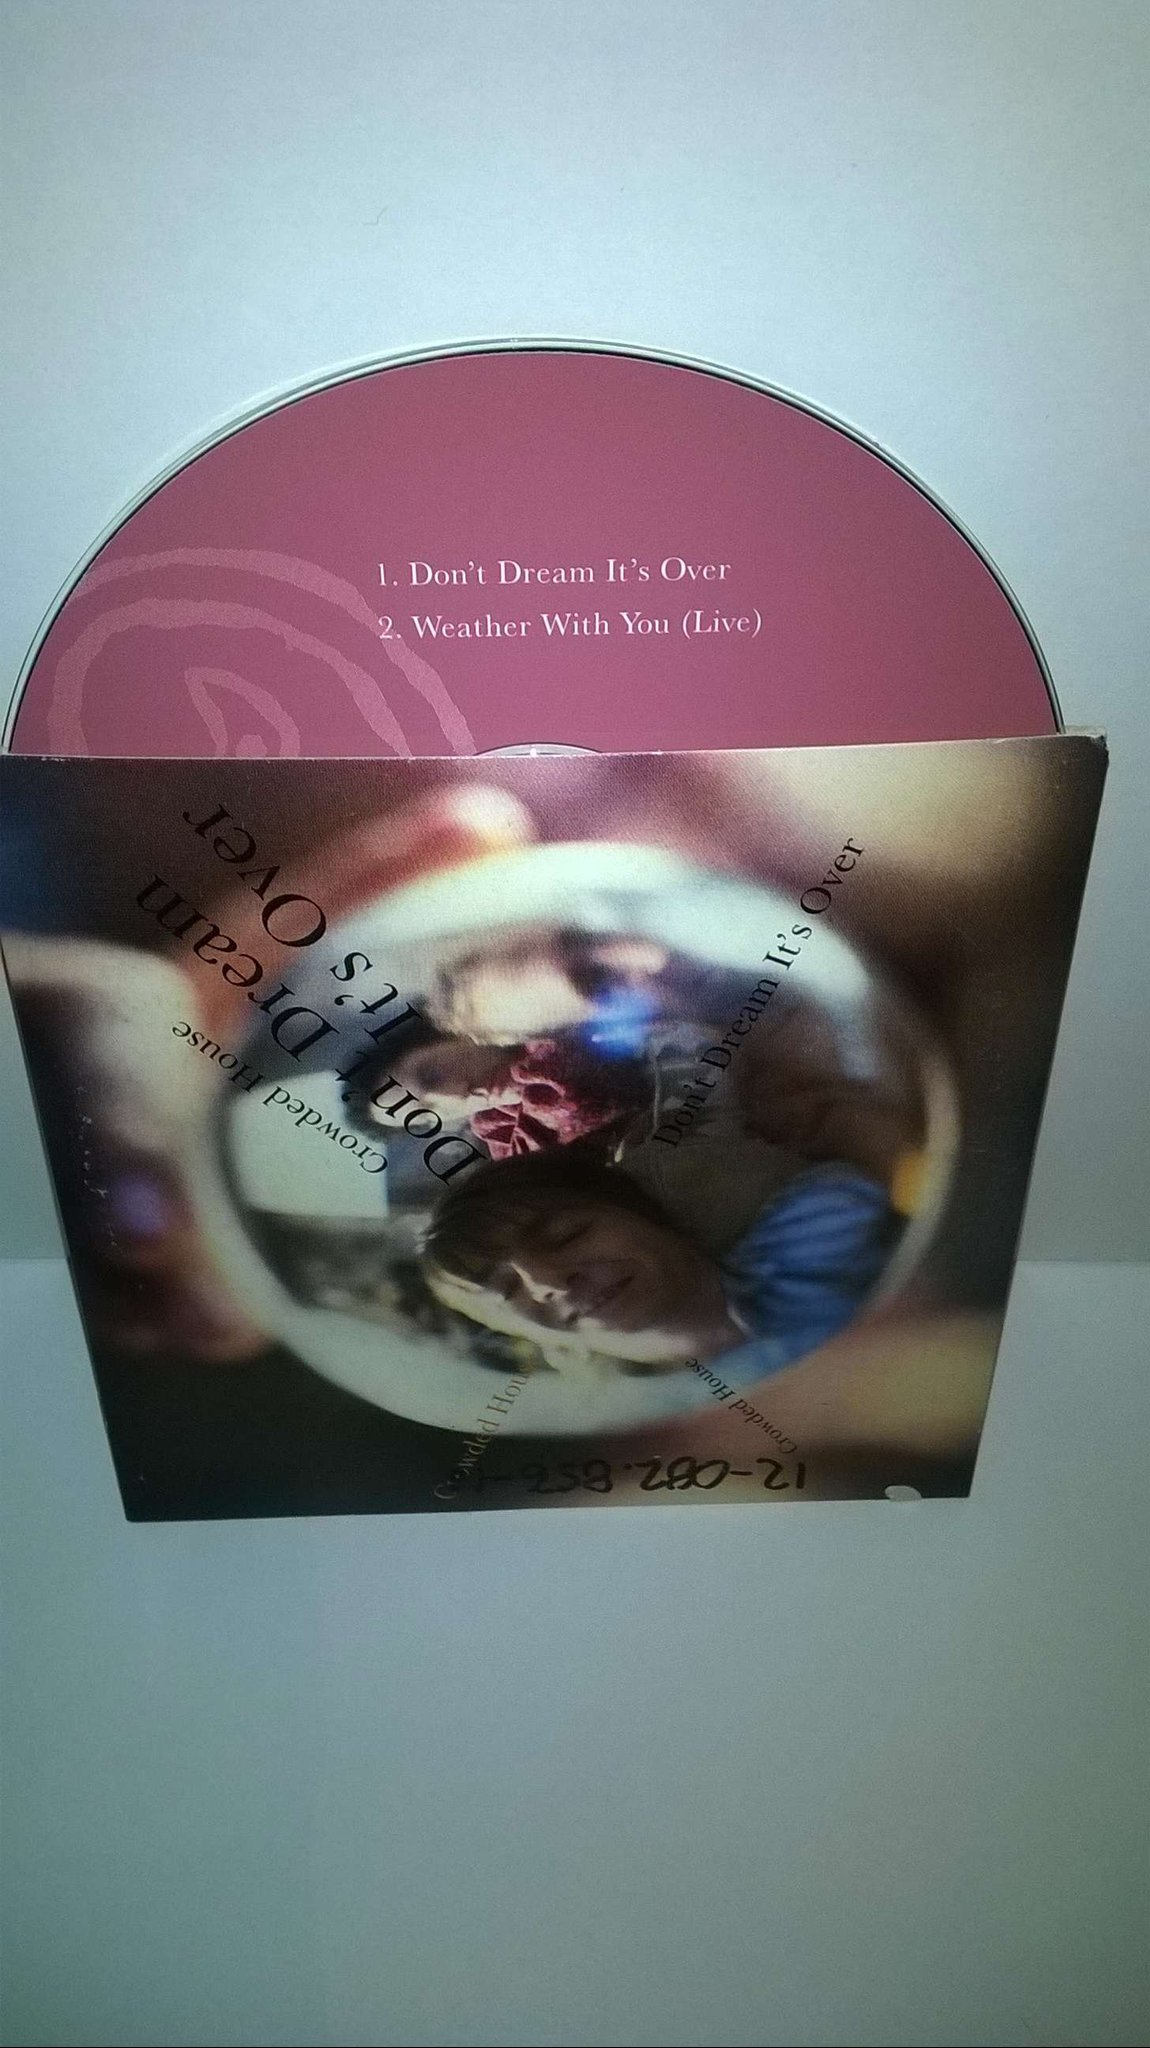 Crowded House - Don't Dream It's Over, single CD